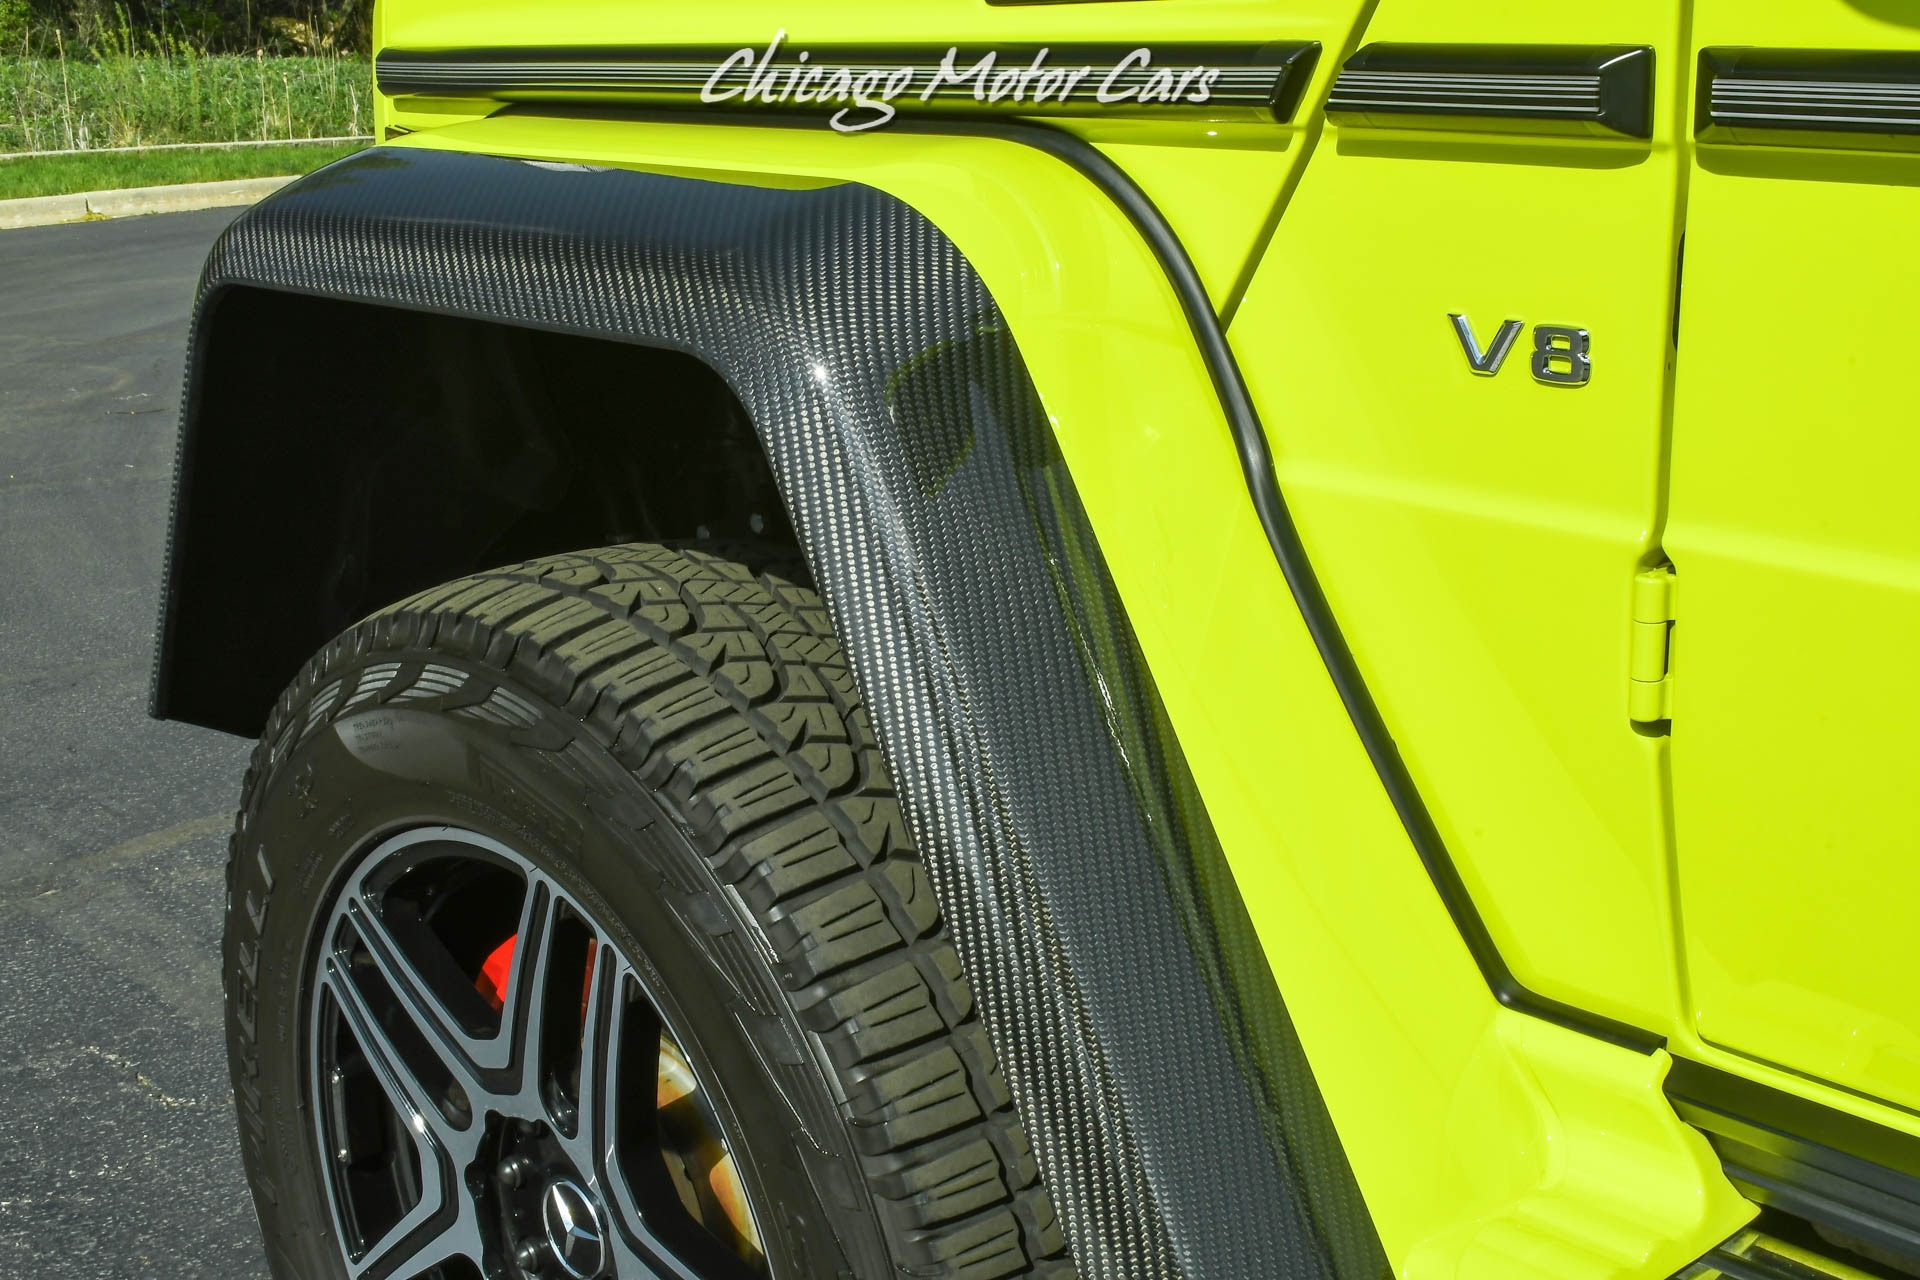 Used-2017-Mercedes-Benz-G550-4x4-Squared-4x4-Squared-1300-Produced-Electric-Beam-Yellow-RARE